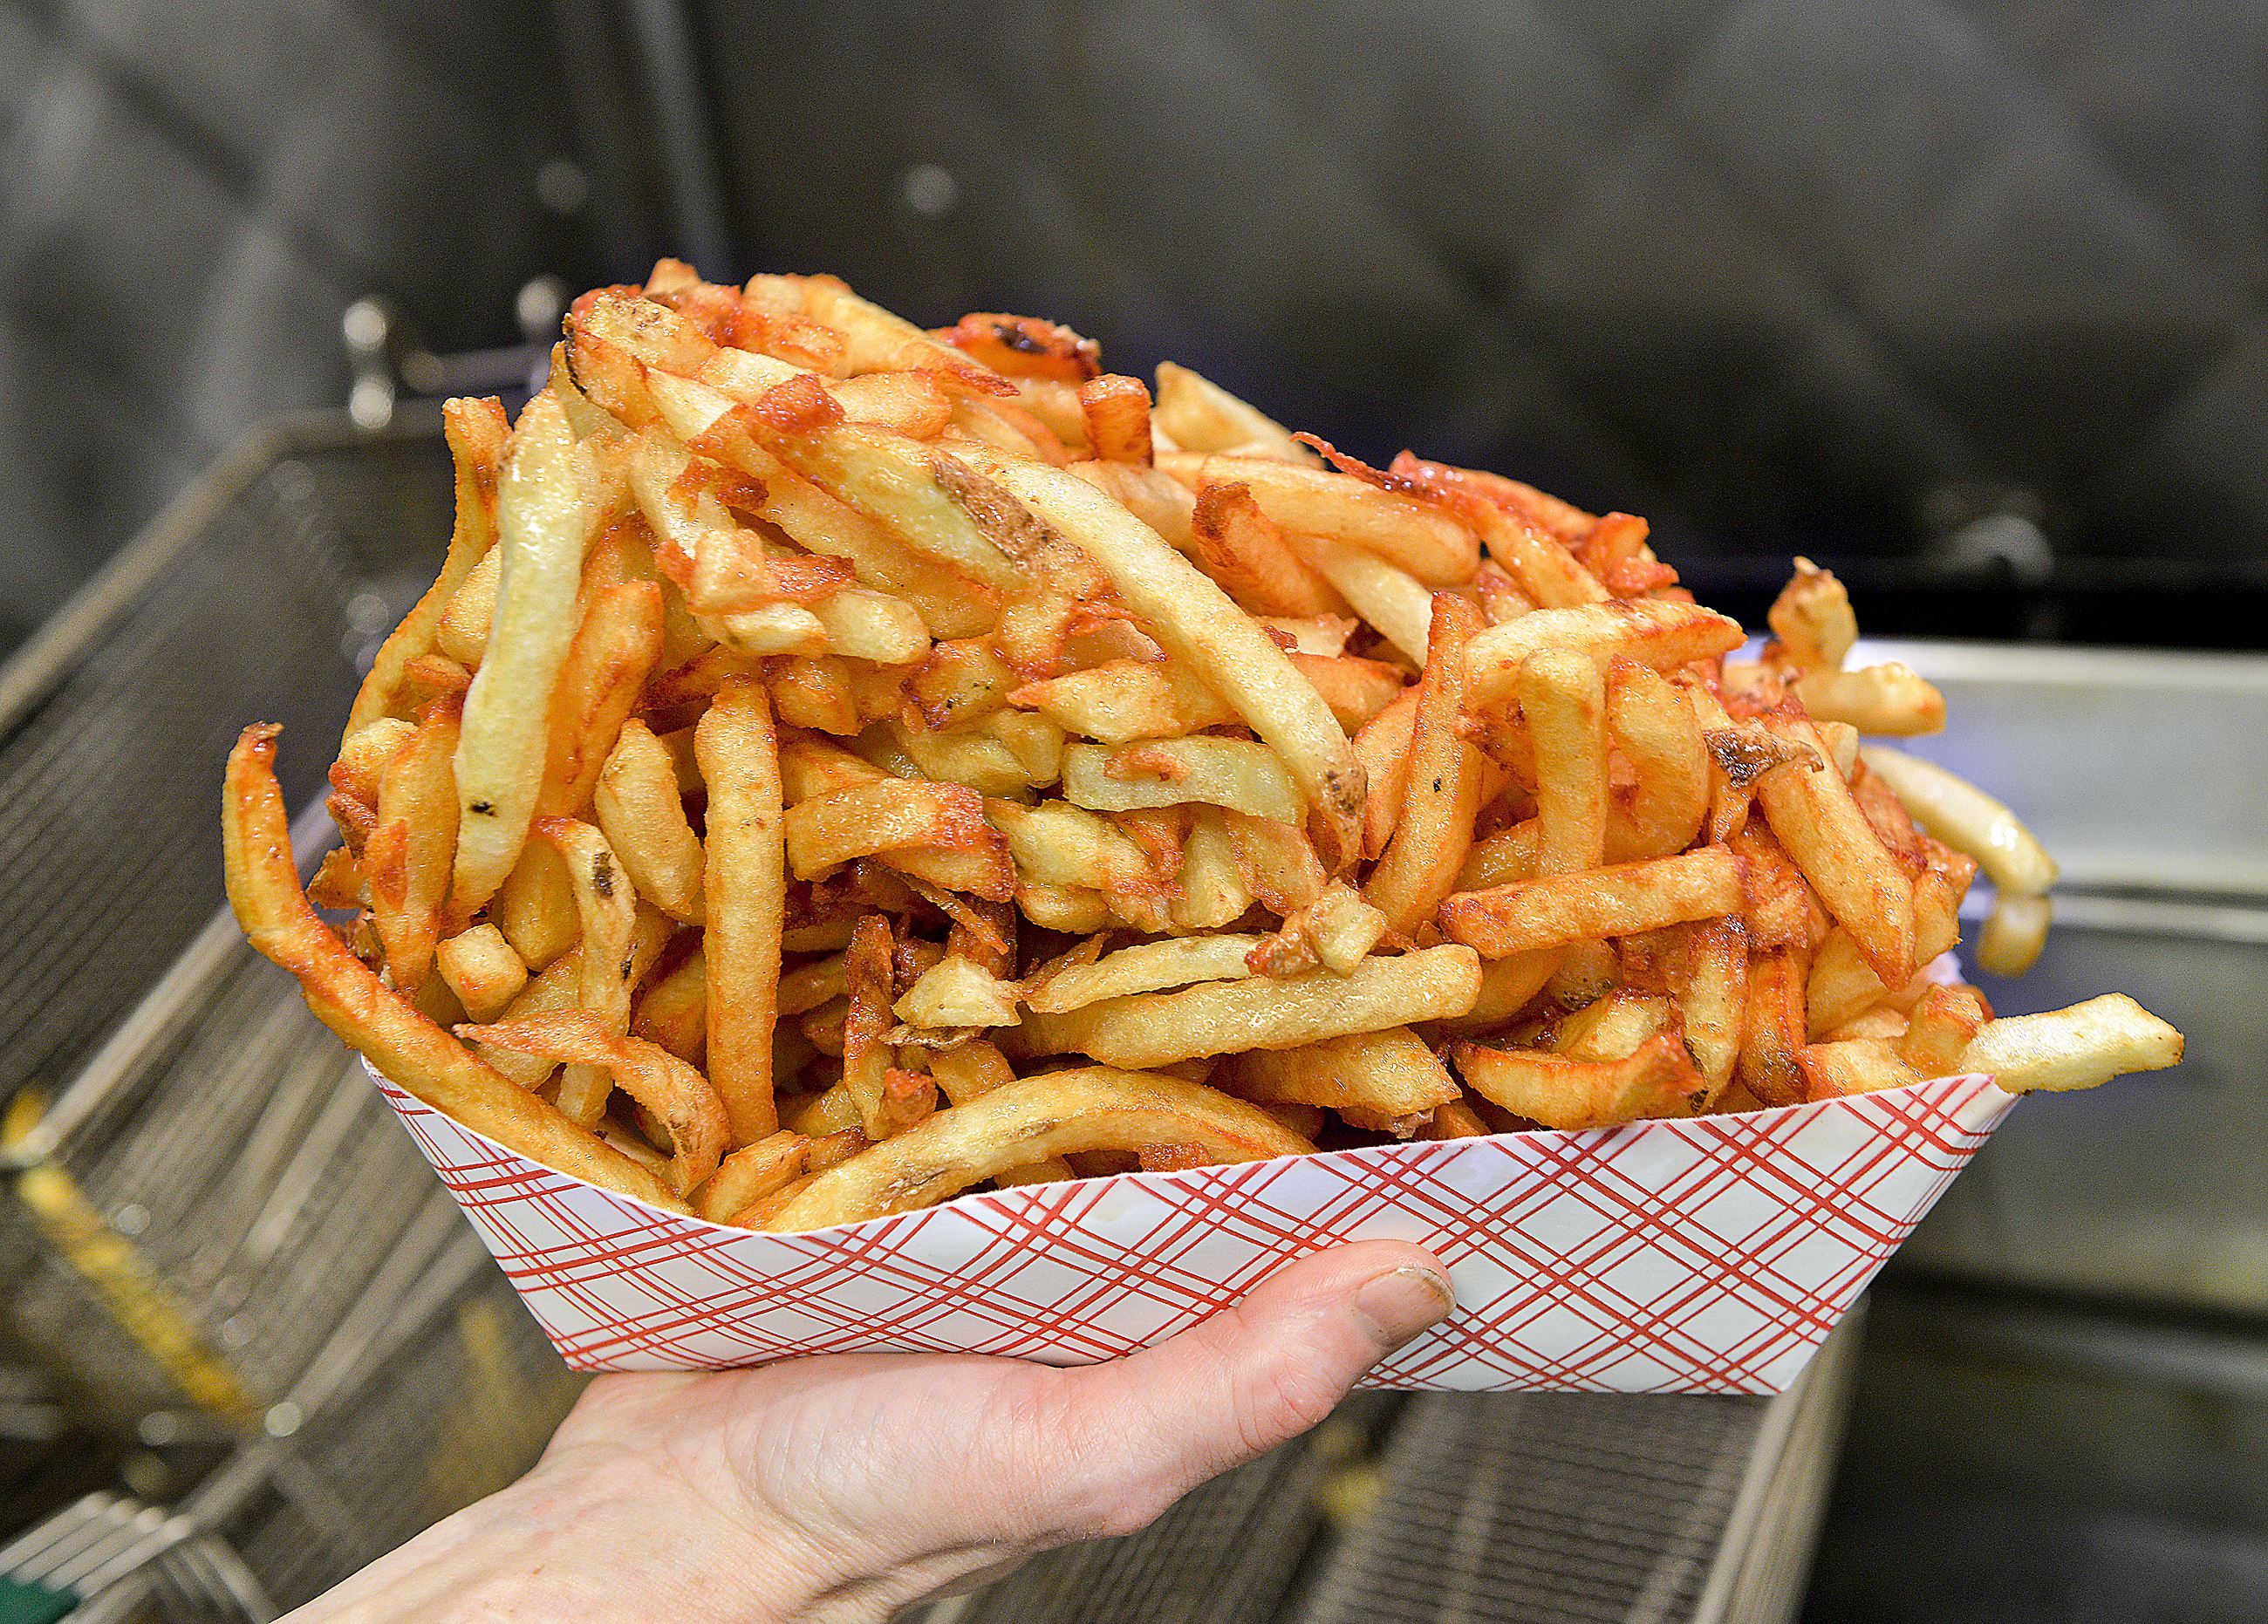 Dine: On a mission to find the best french fries in ...